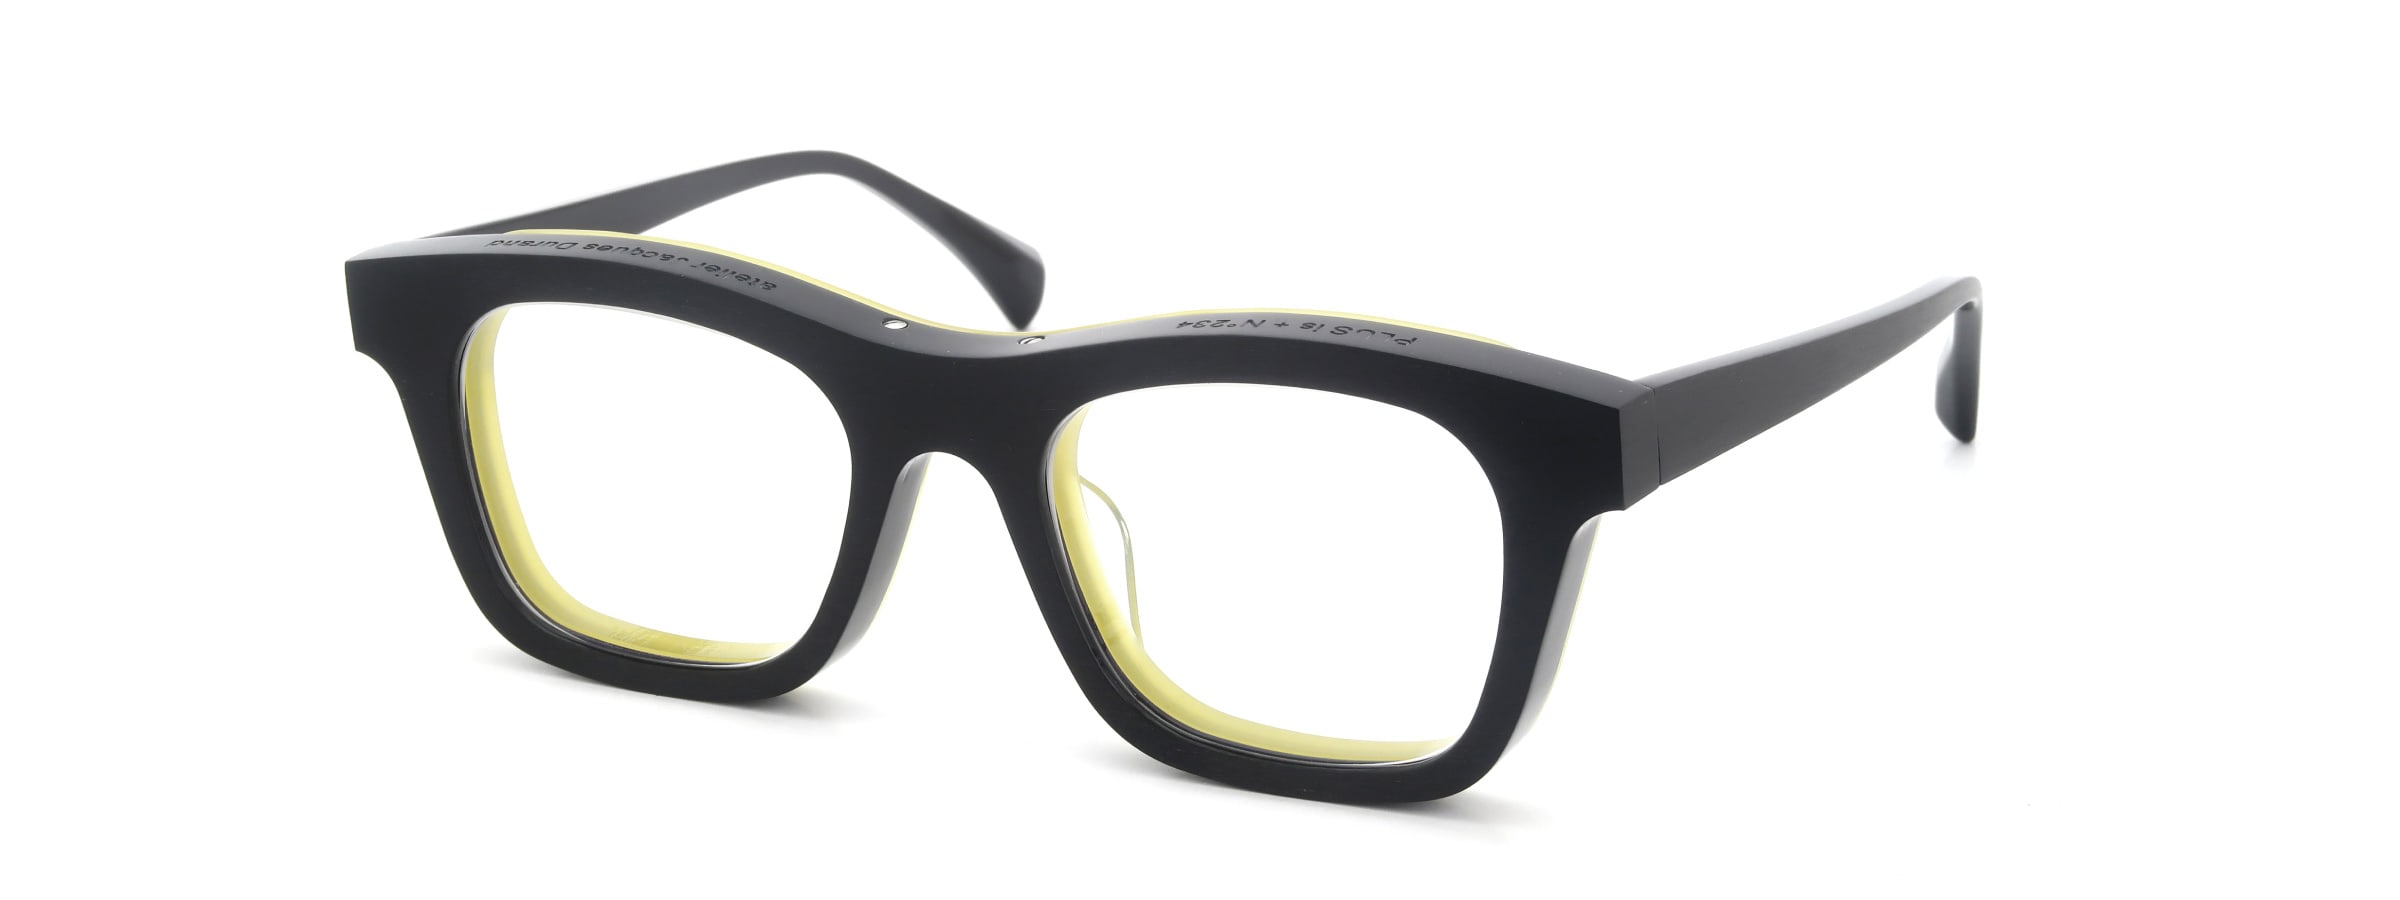 Jacques Durand Plus is + 234(INTRADOS) col.002 HM-black yellow全体像